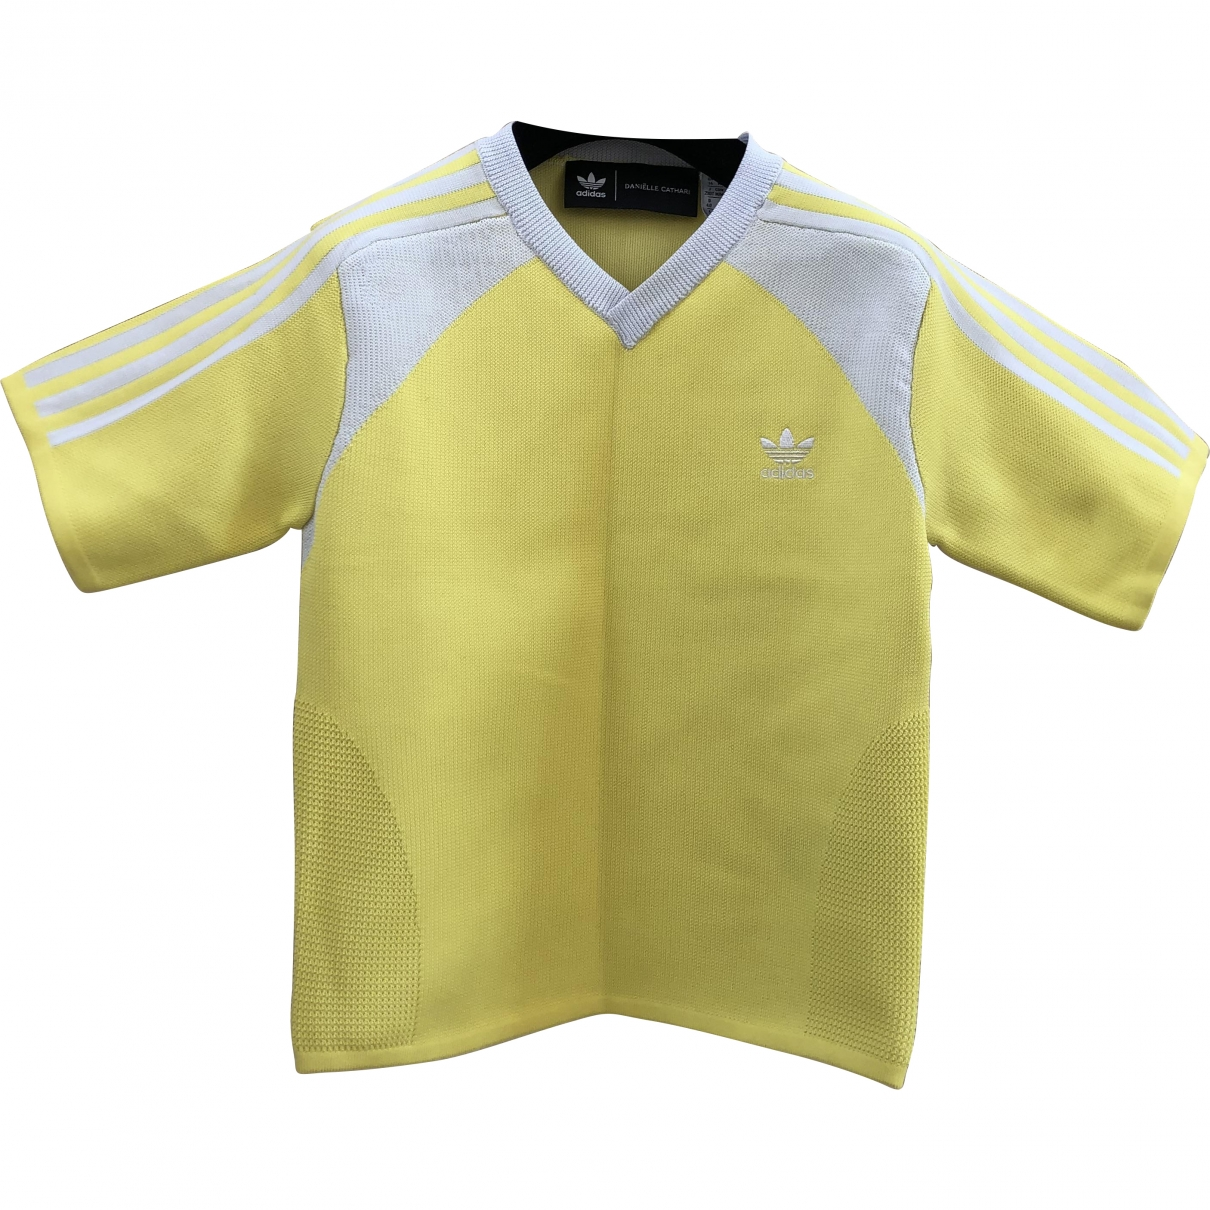 Adidas \N Top in  Gelb Polyester